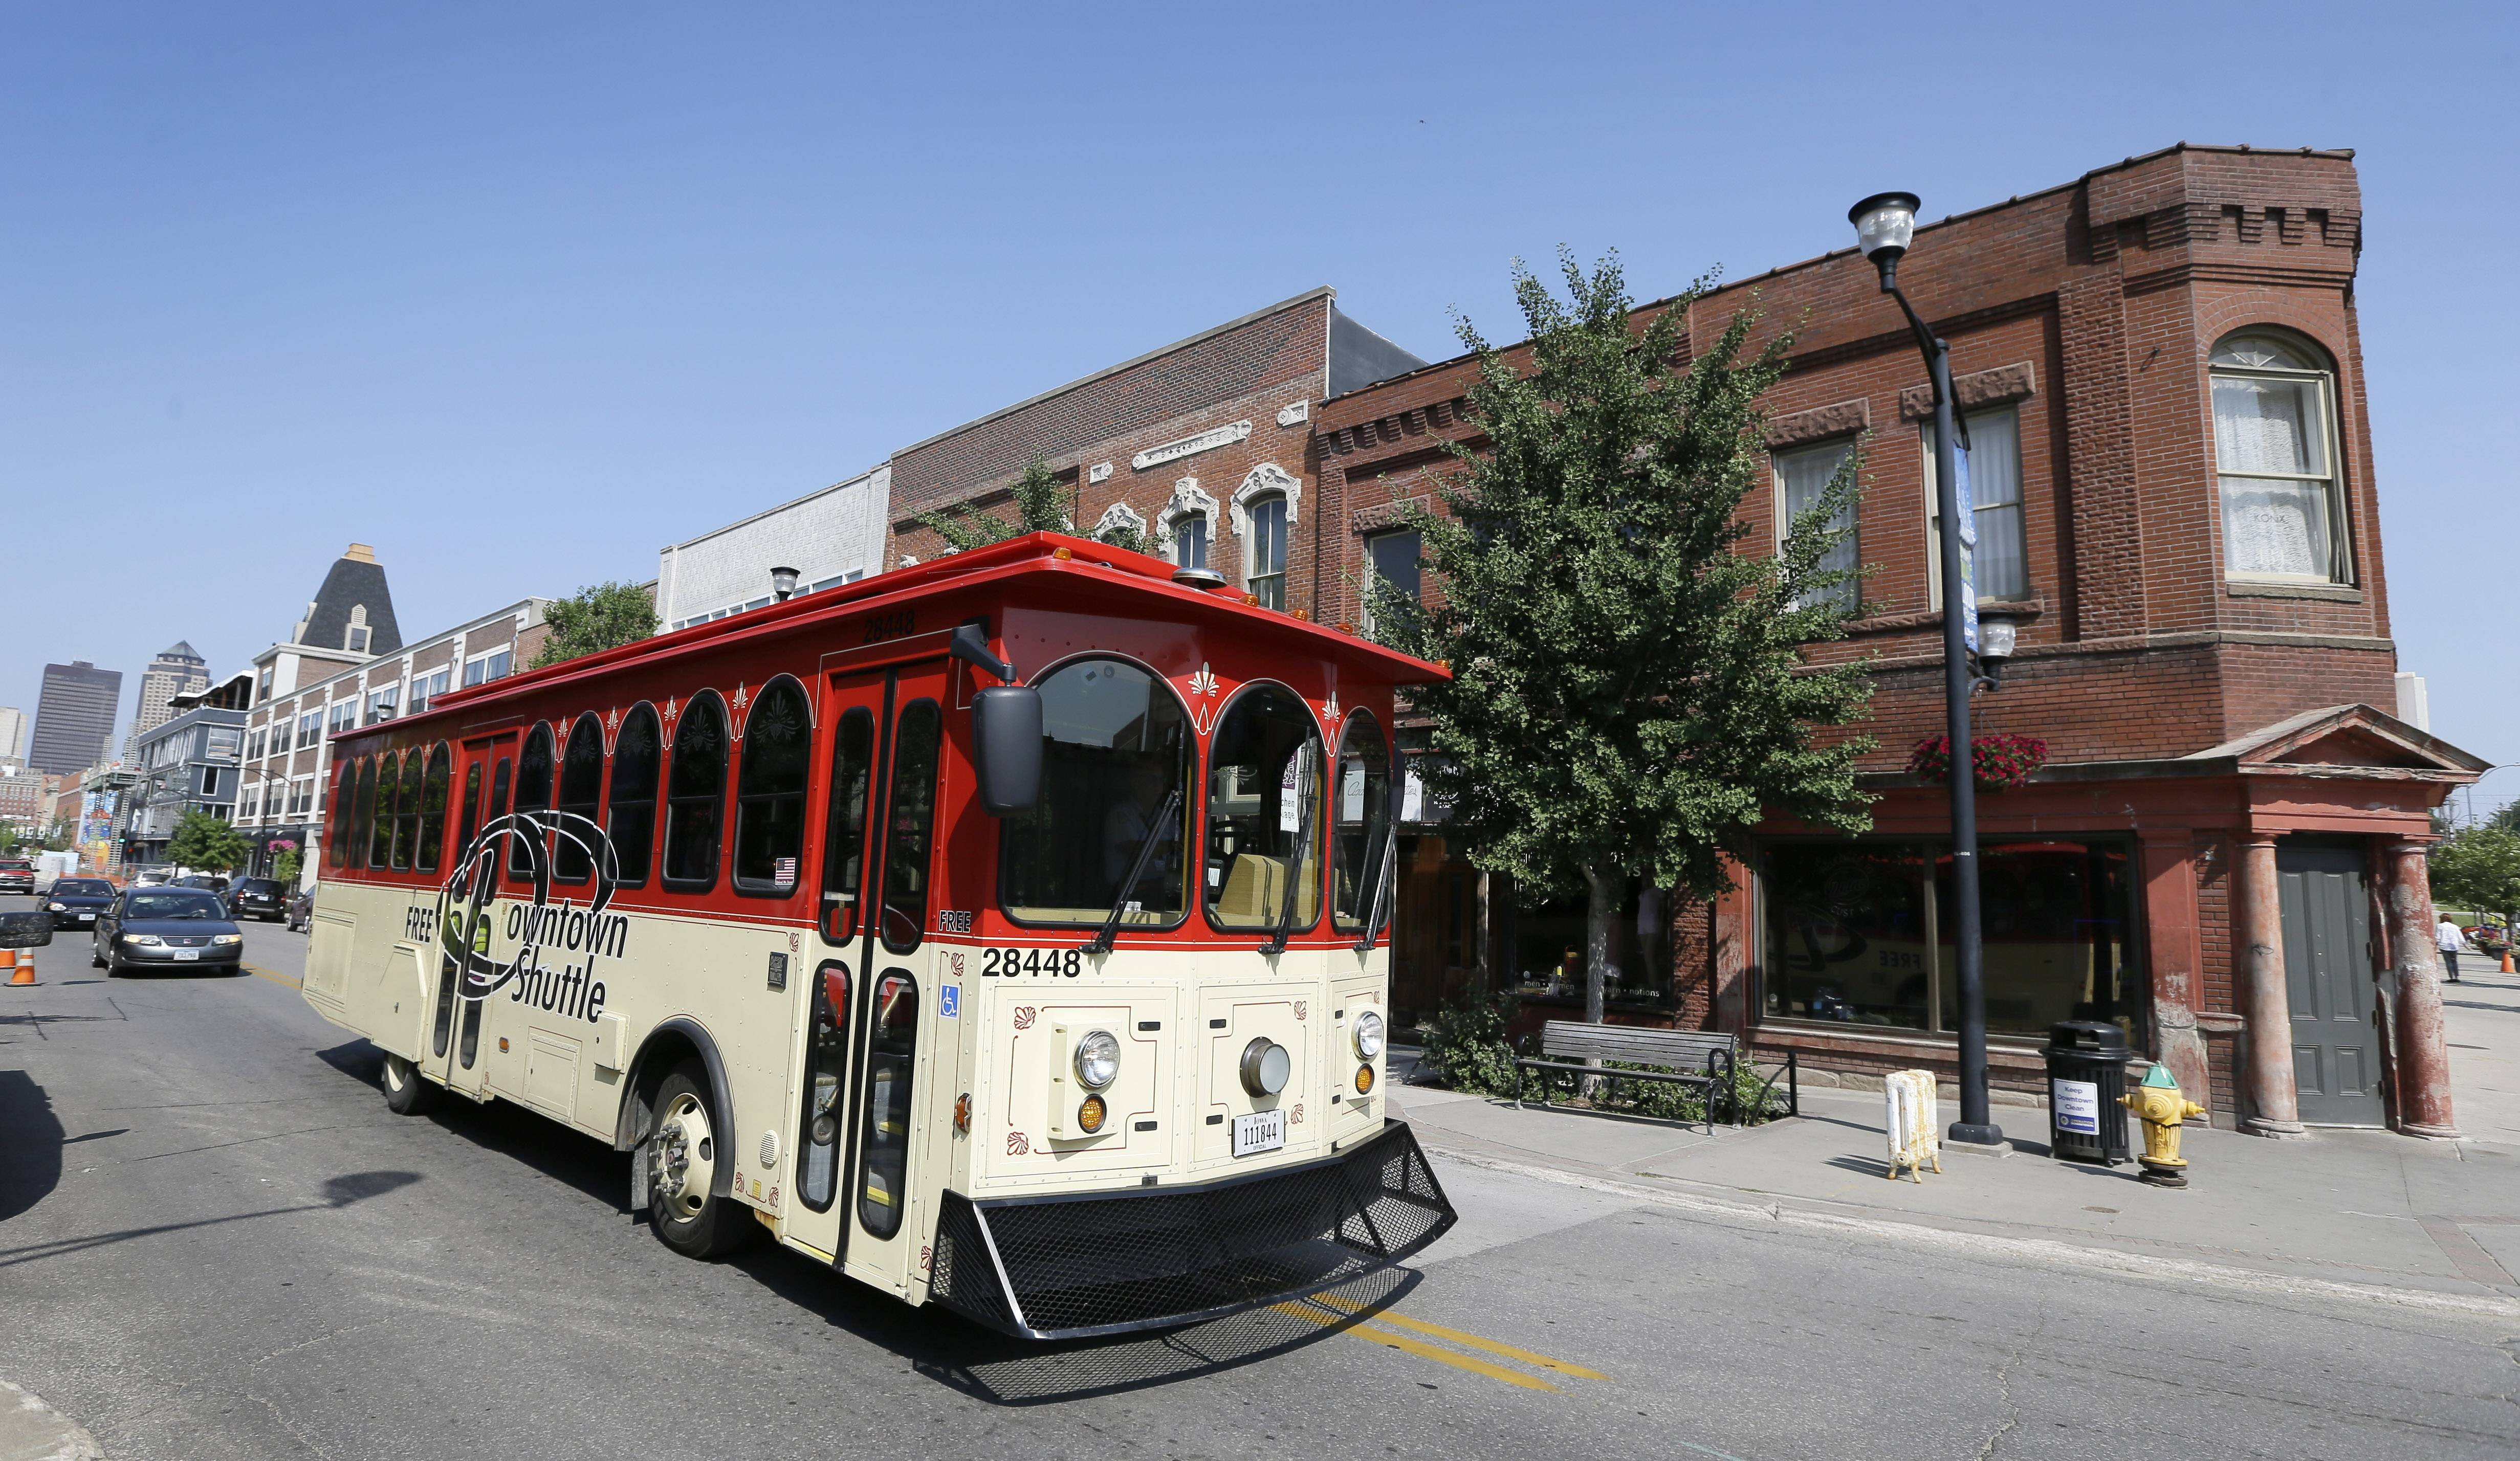 A free downtown shuttle takes passengers through the historic East Village district in Des Moines, Iowa.